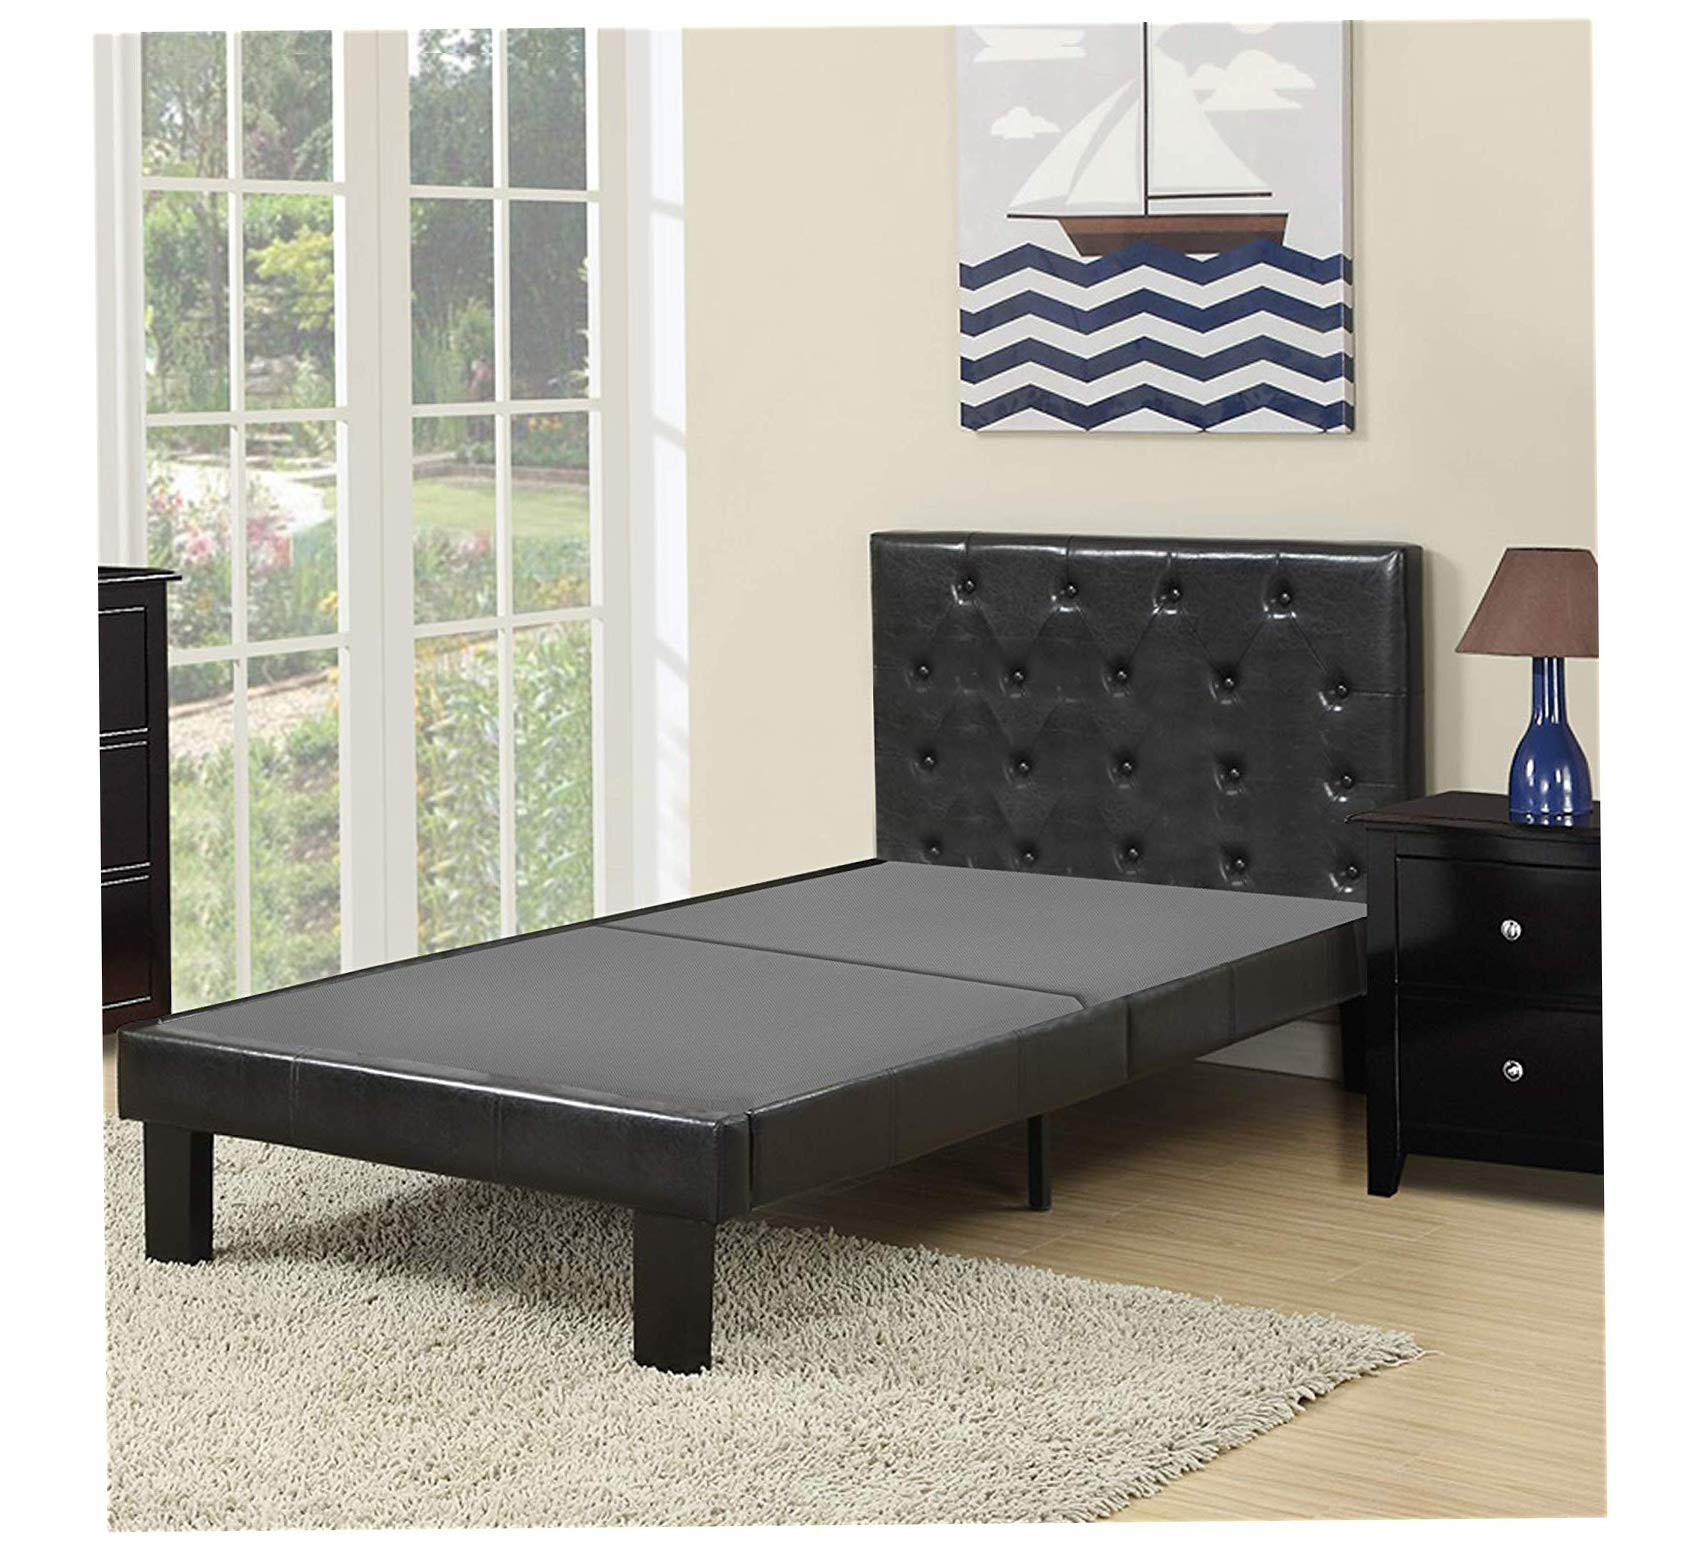 Wood & Style Made in USA Fully Assembled 2 Inch Split Foundation Bunkie Board, Twin, Twin Comfy Living Home Décor Furniture Heavy Duty